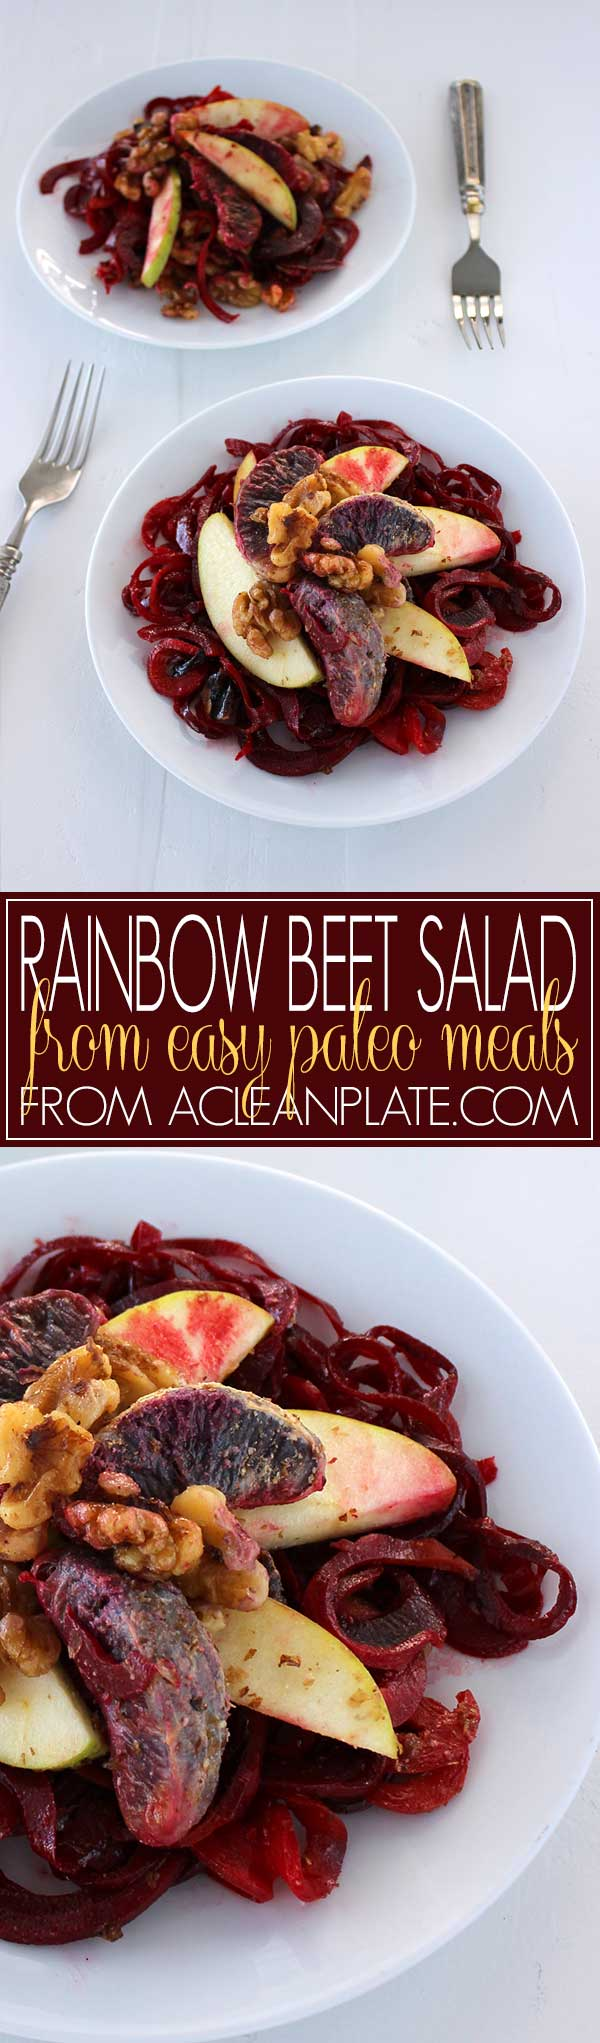 Rainbow Beet Salad from Easy Paleo Meals on acleanplate.com